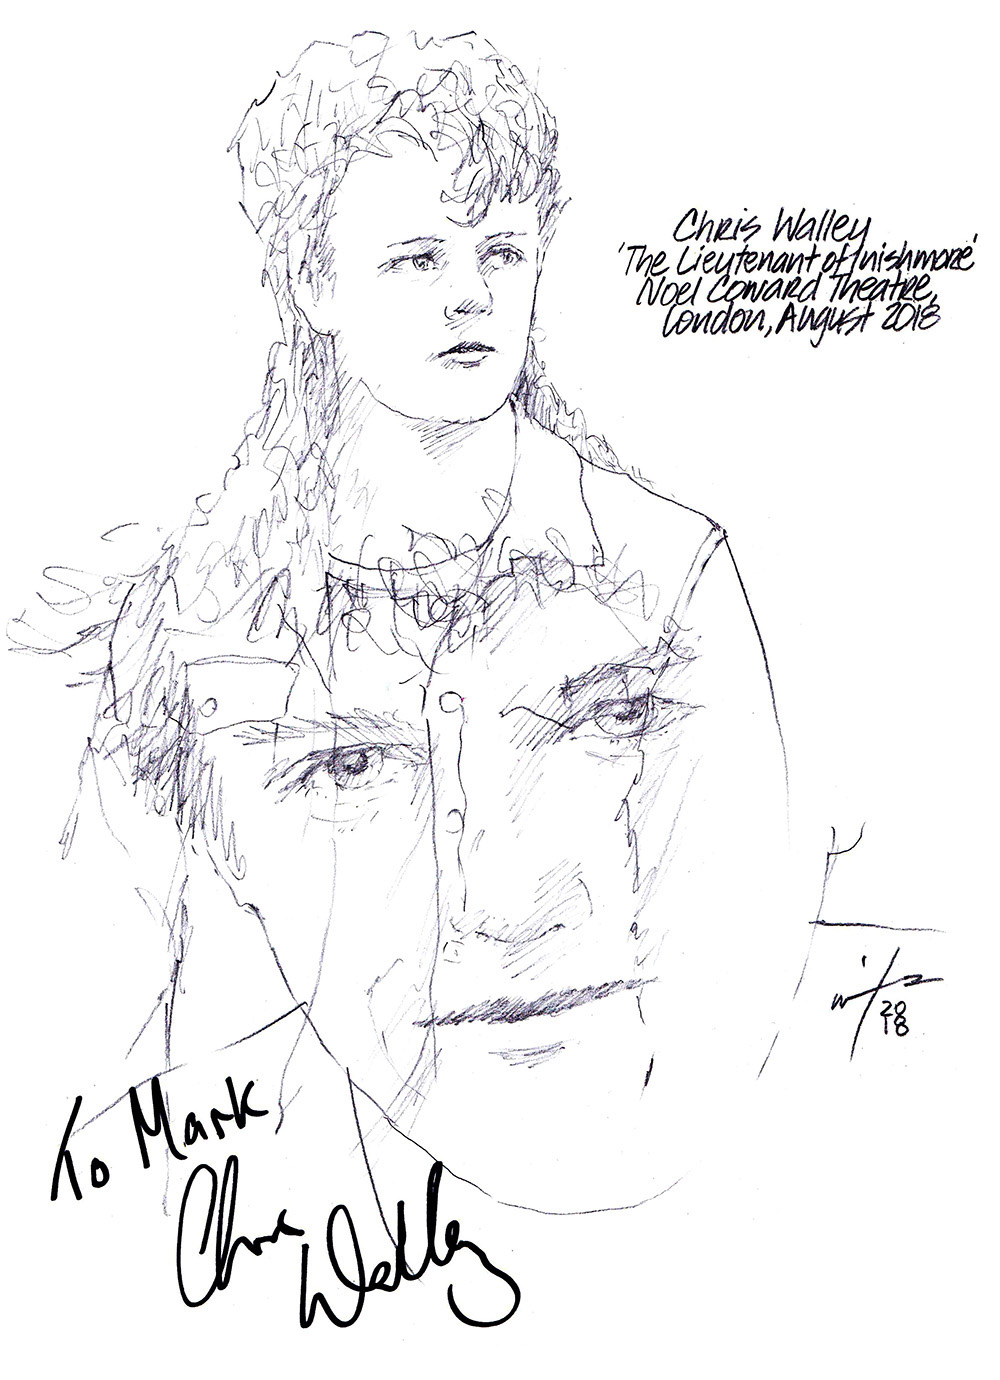 Autographed drawing of Chris Walley in The Lieutenant of Inishmore at the Noel Coward Theatre on London's West End